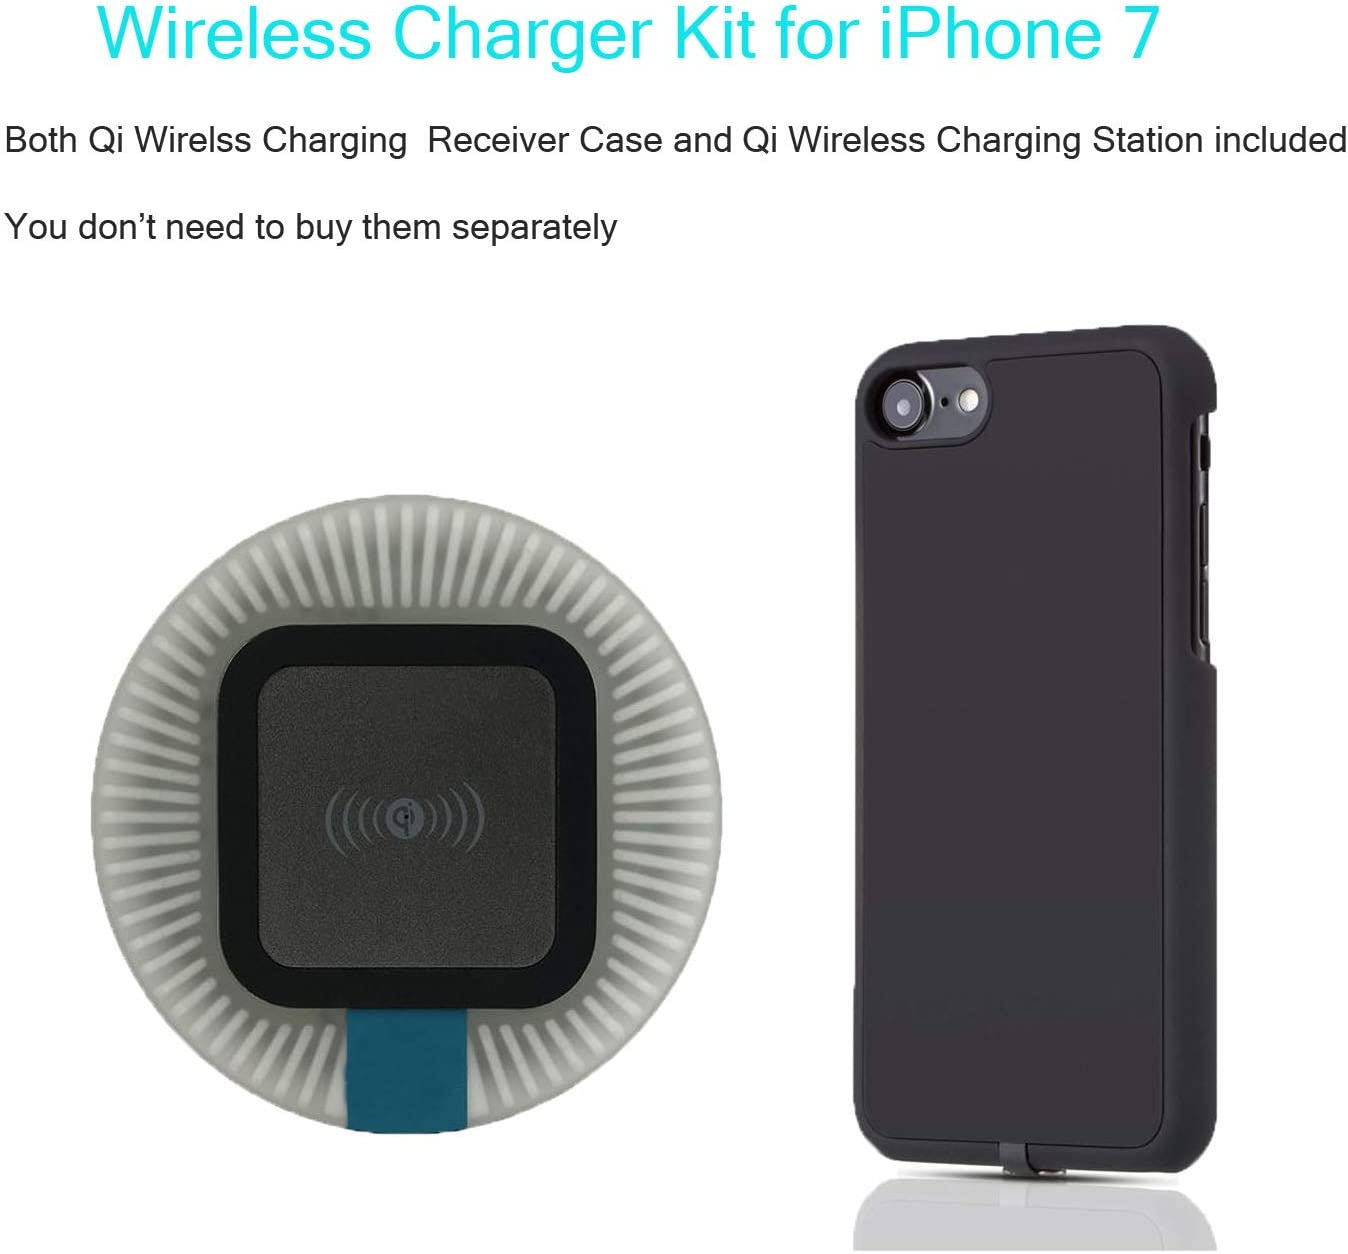 2 in 1 Qi iPhone 7 Wireless Charger Kit Include Qi Charger Base and Qi Case | Flexible Connector | Delicate Rubber Black Case 4.7